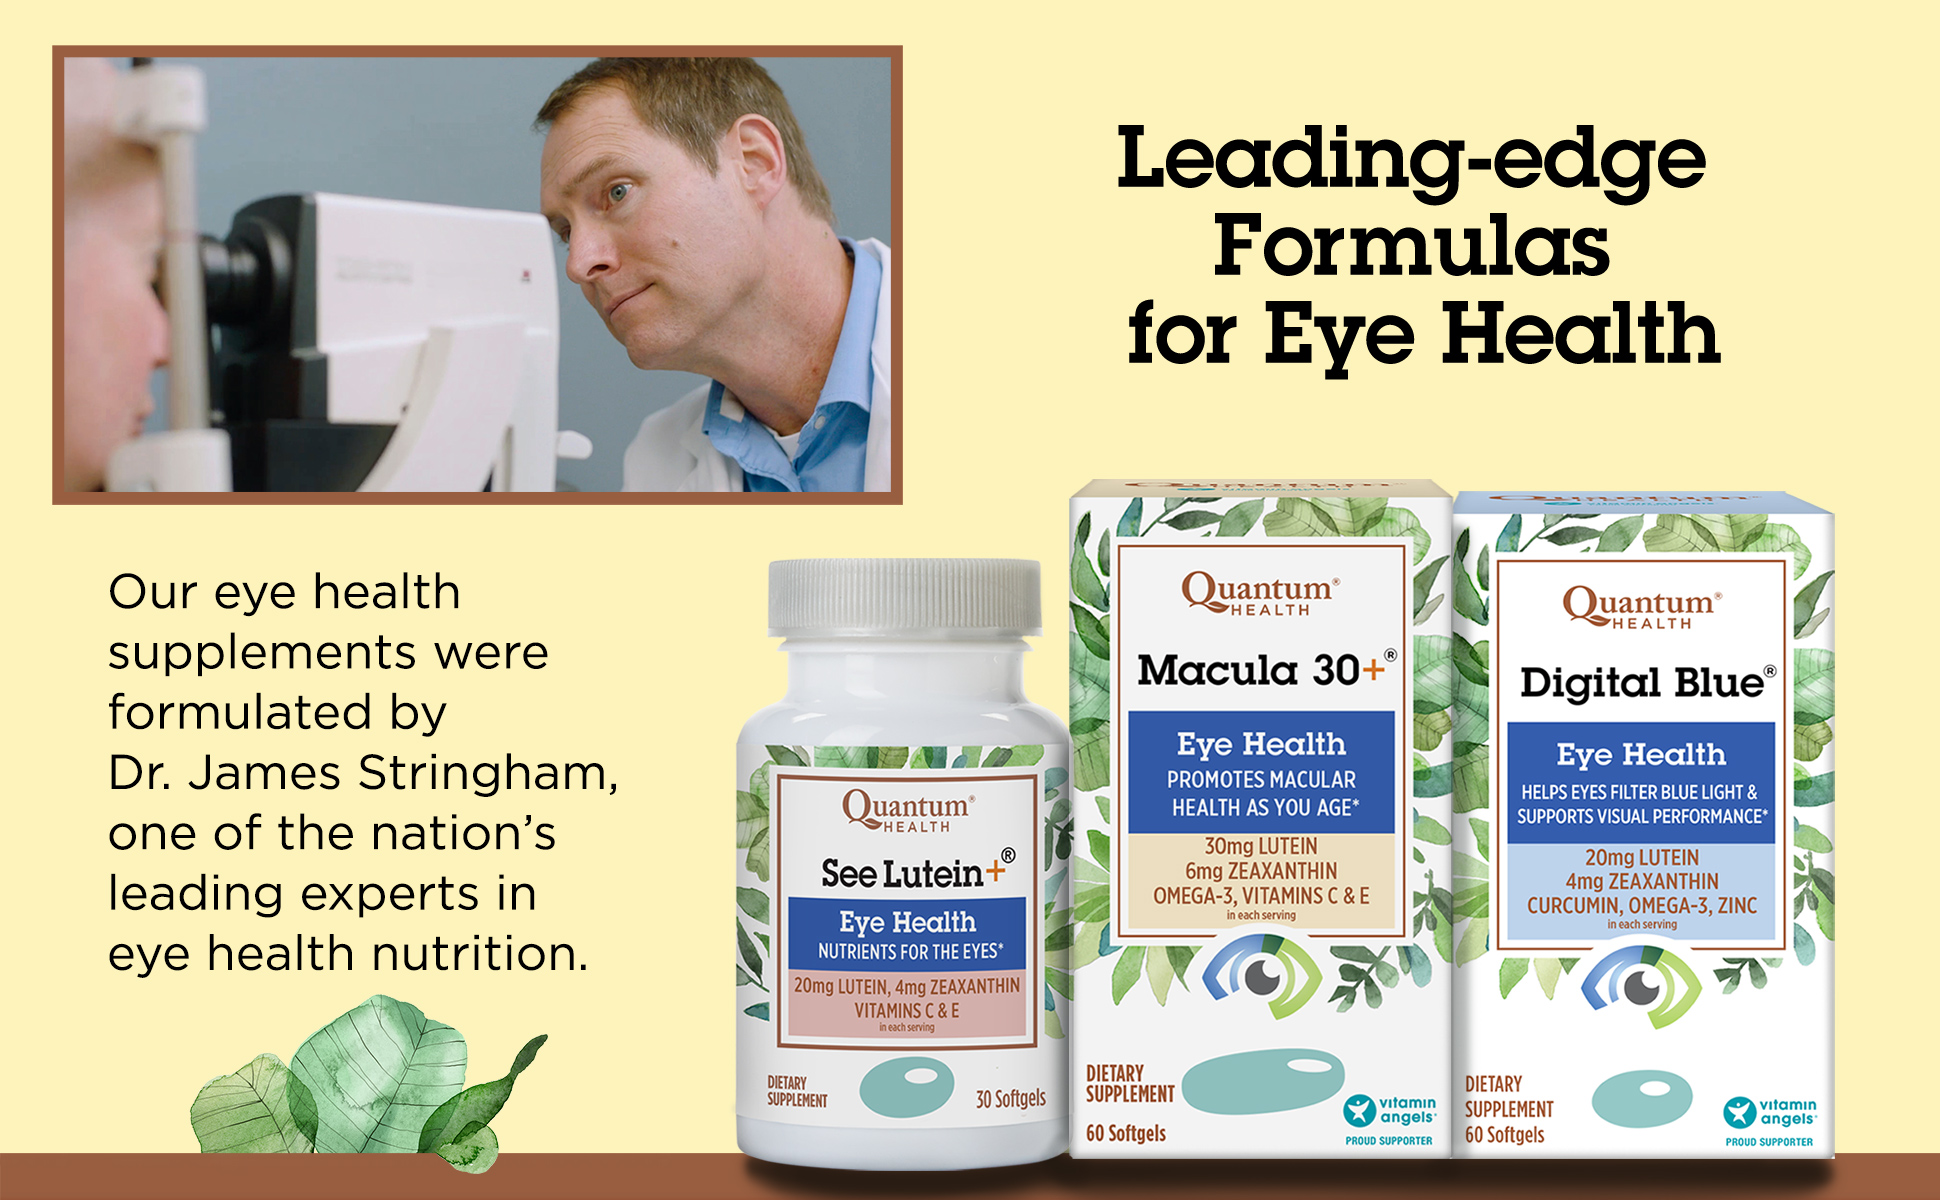 Our eye health supplements were formulated by Dr. James Stringham, one of the nation's leading experts in eye health nutrition.